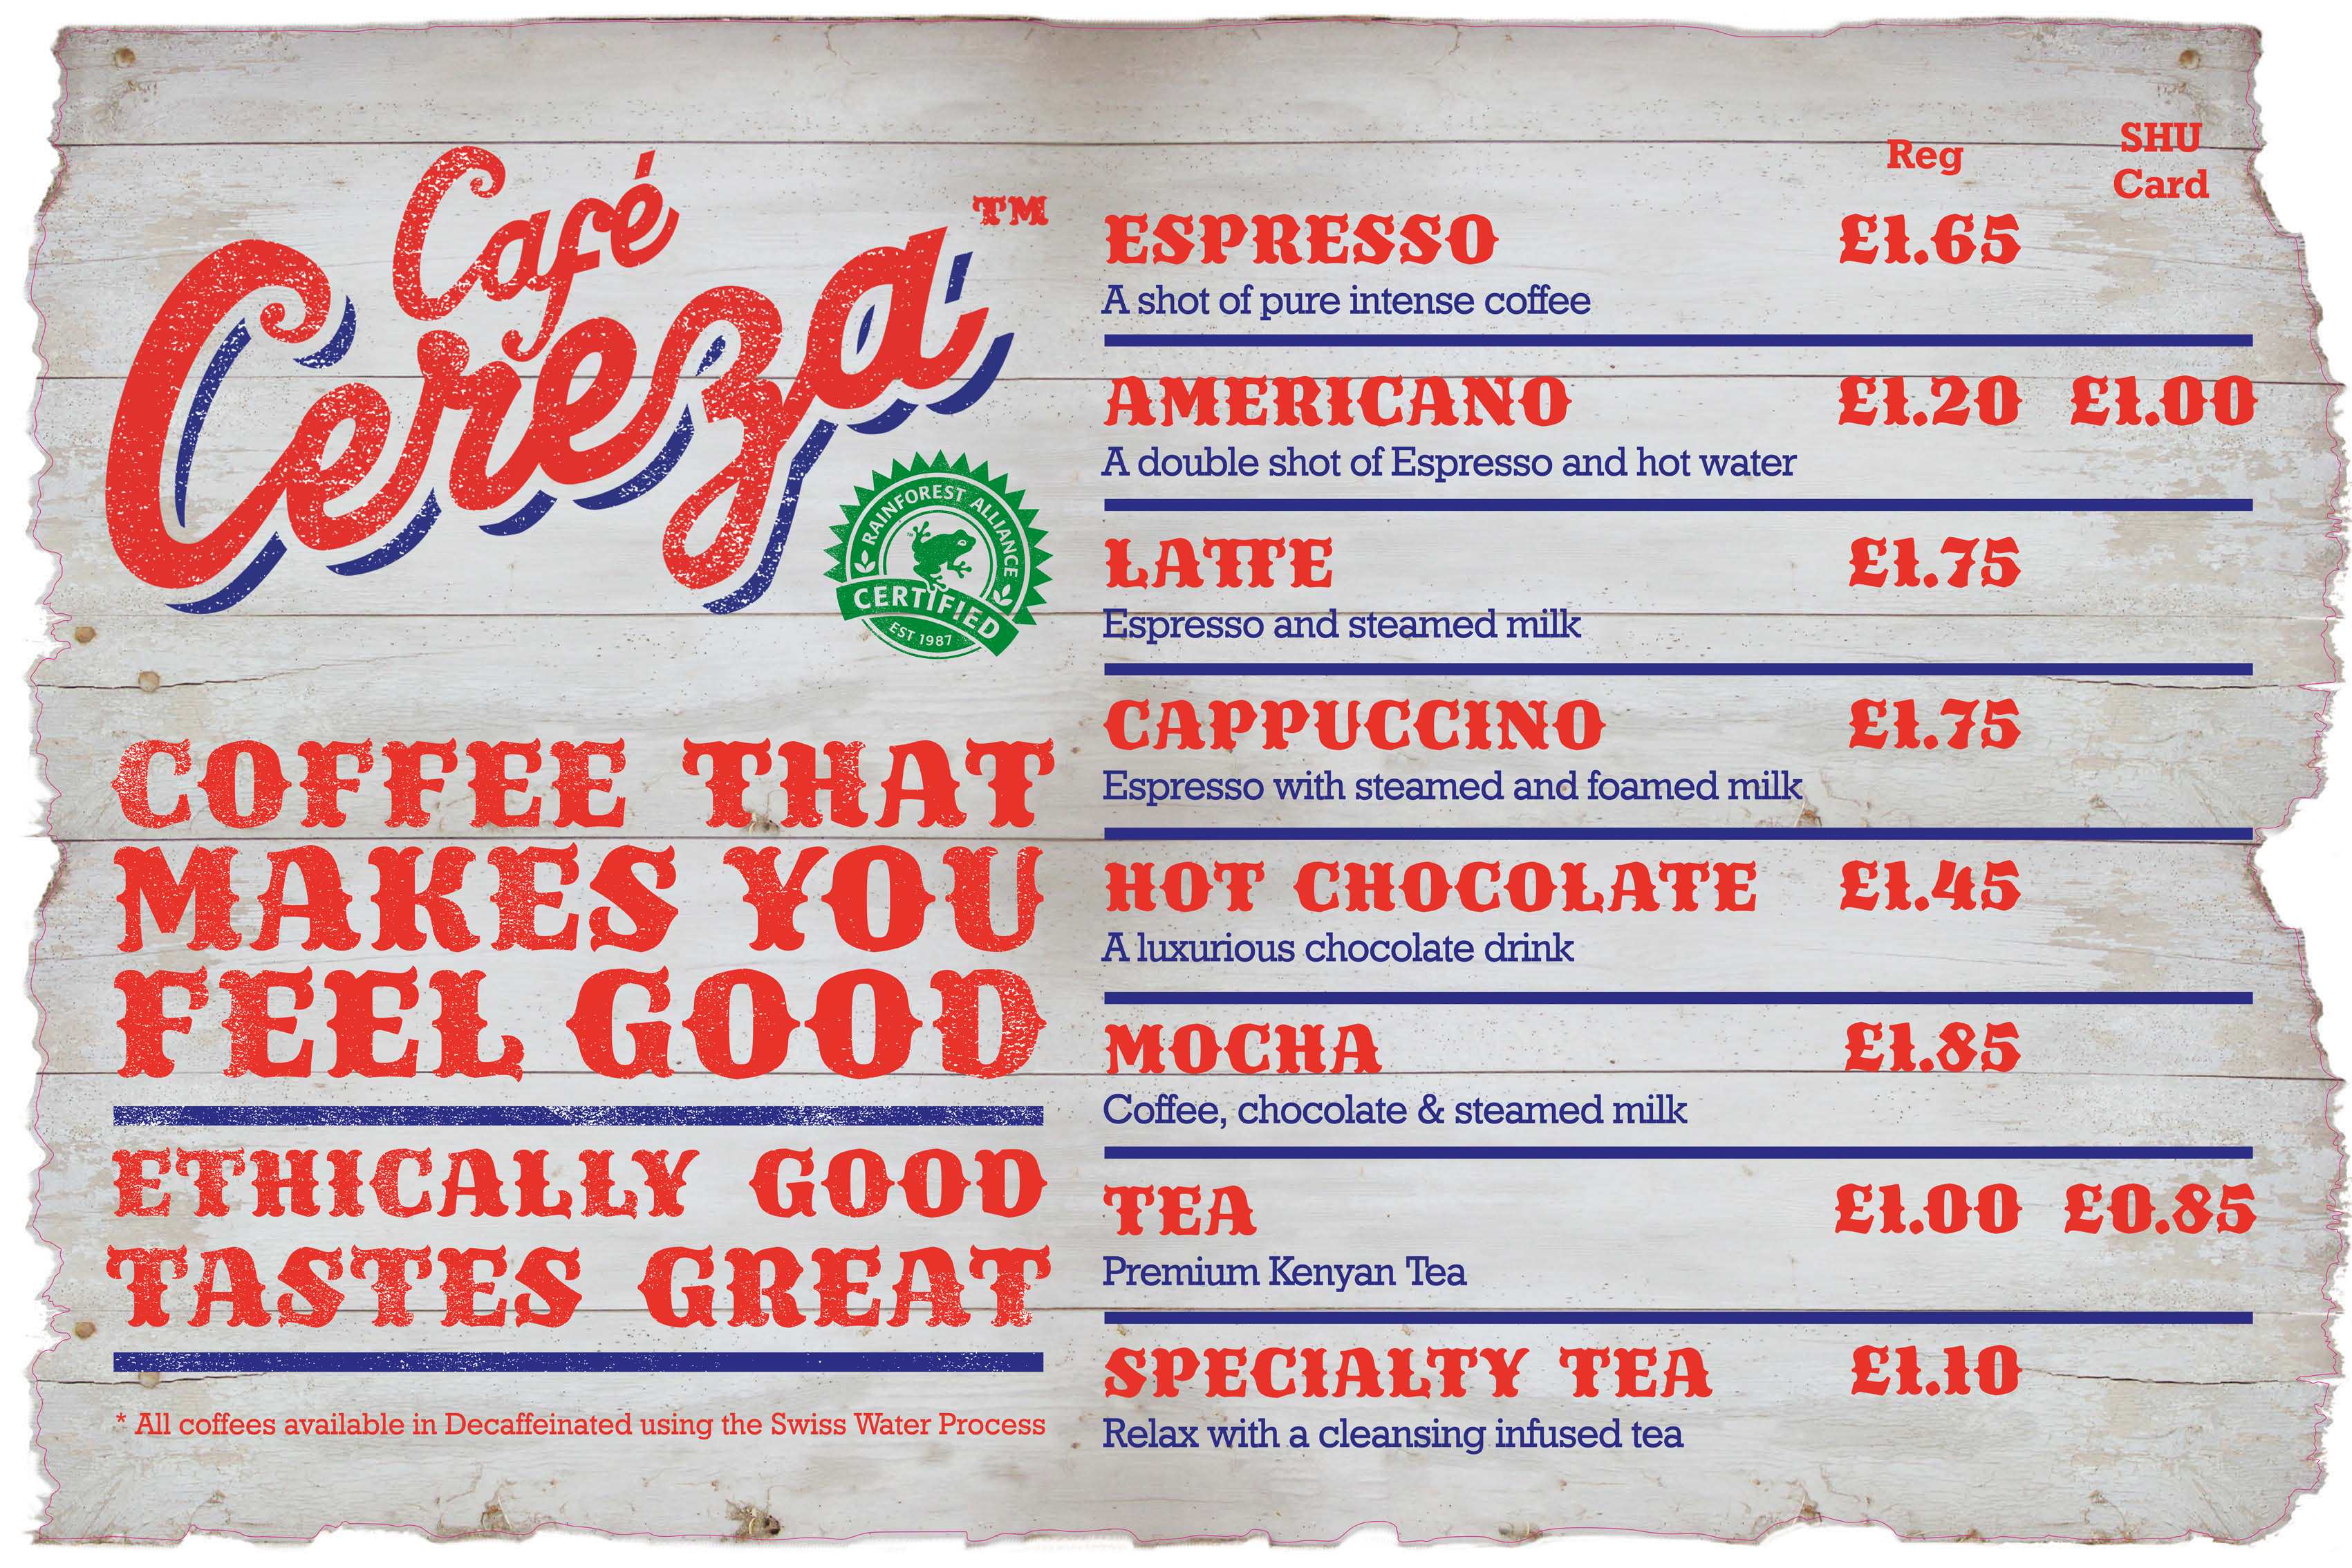 Cafe Cereza menu board